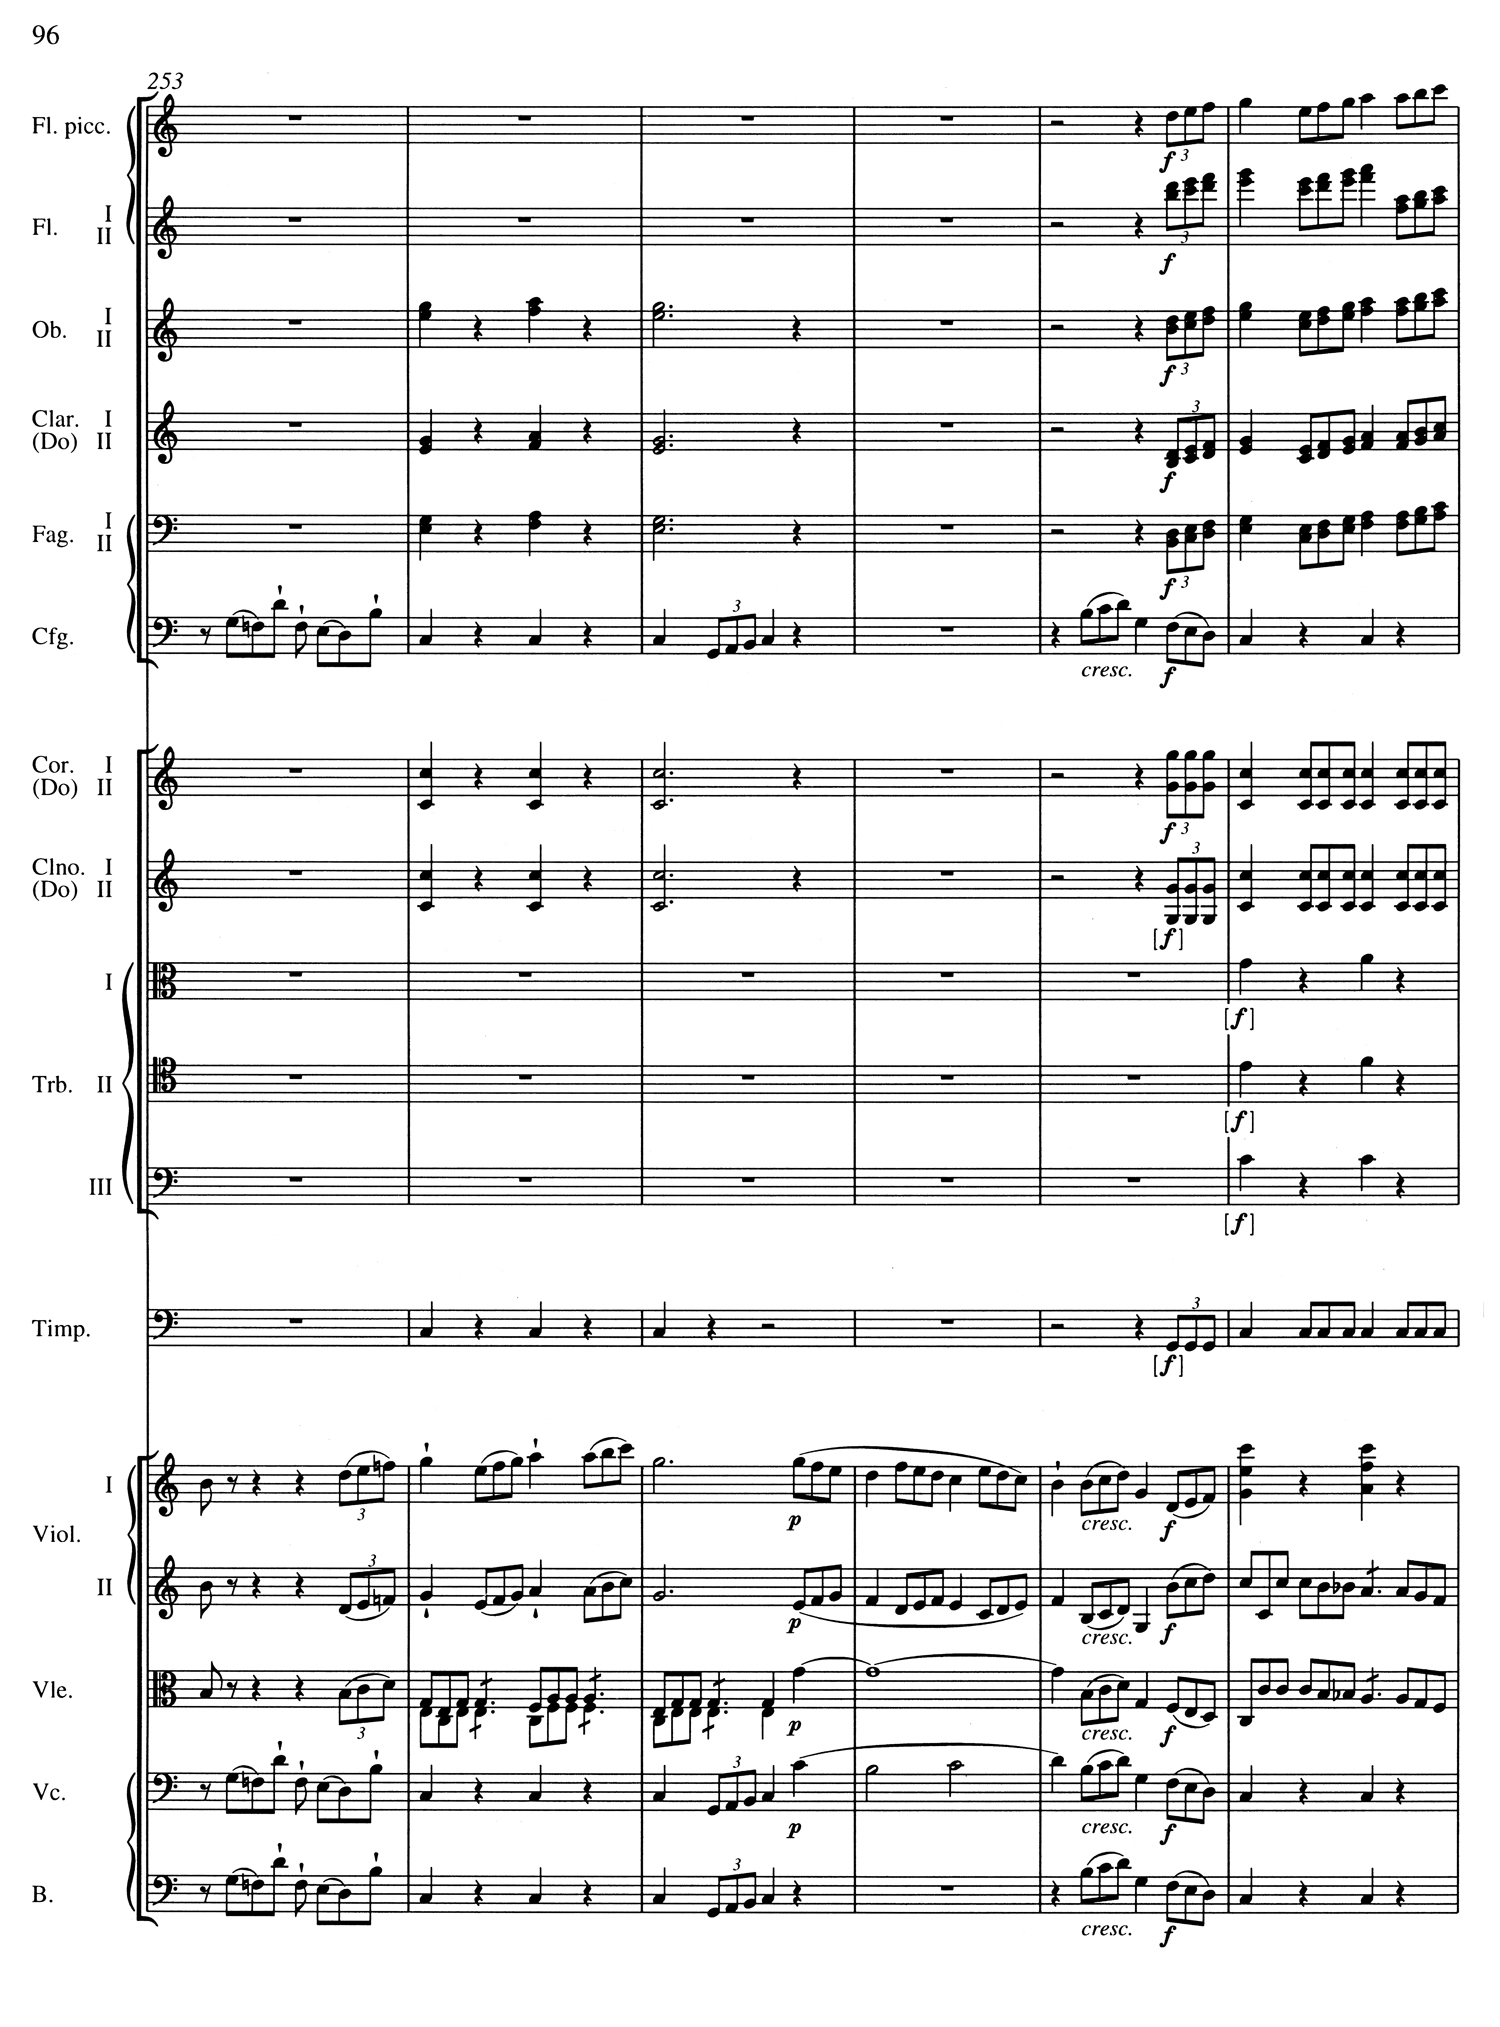 Beethoven 5 Score Page 8.jpg